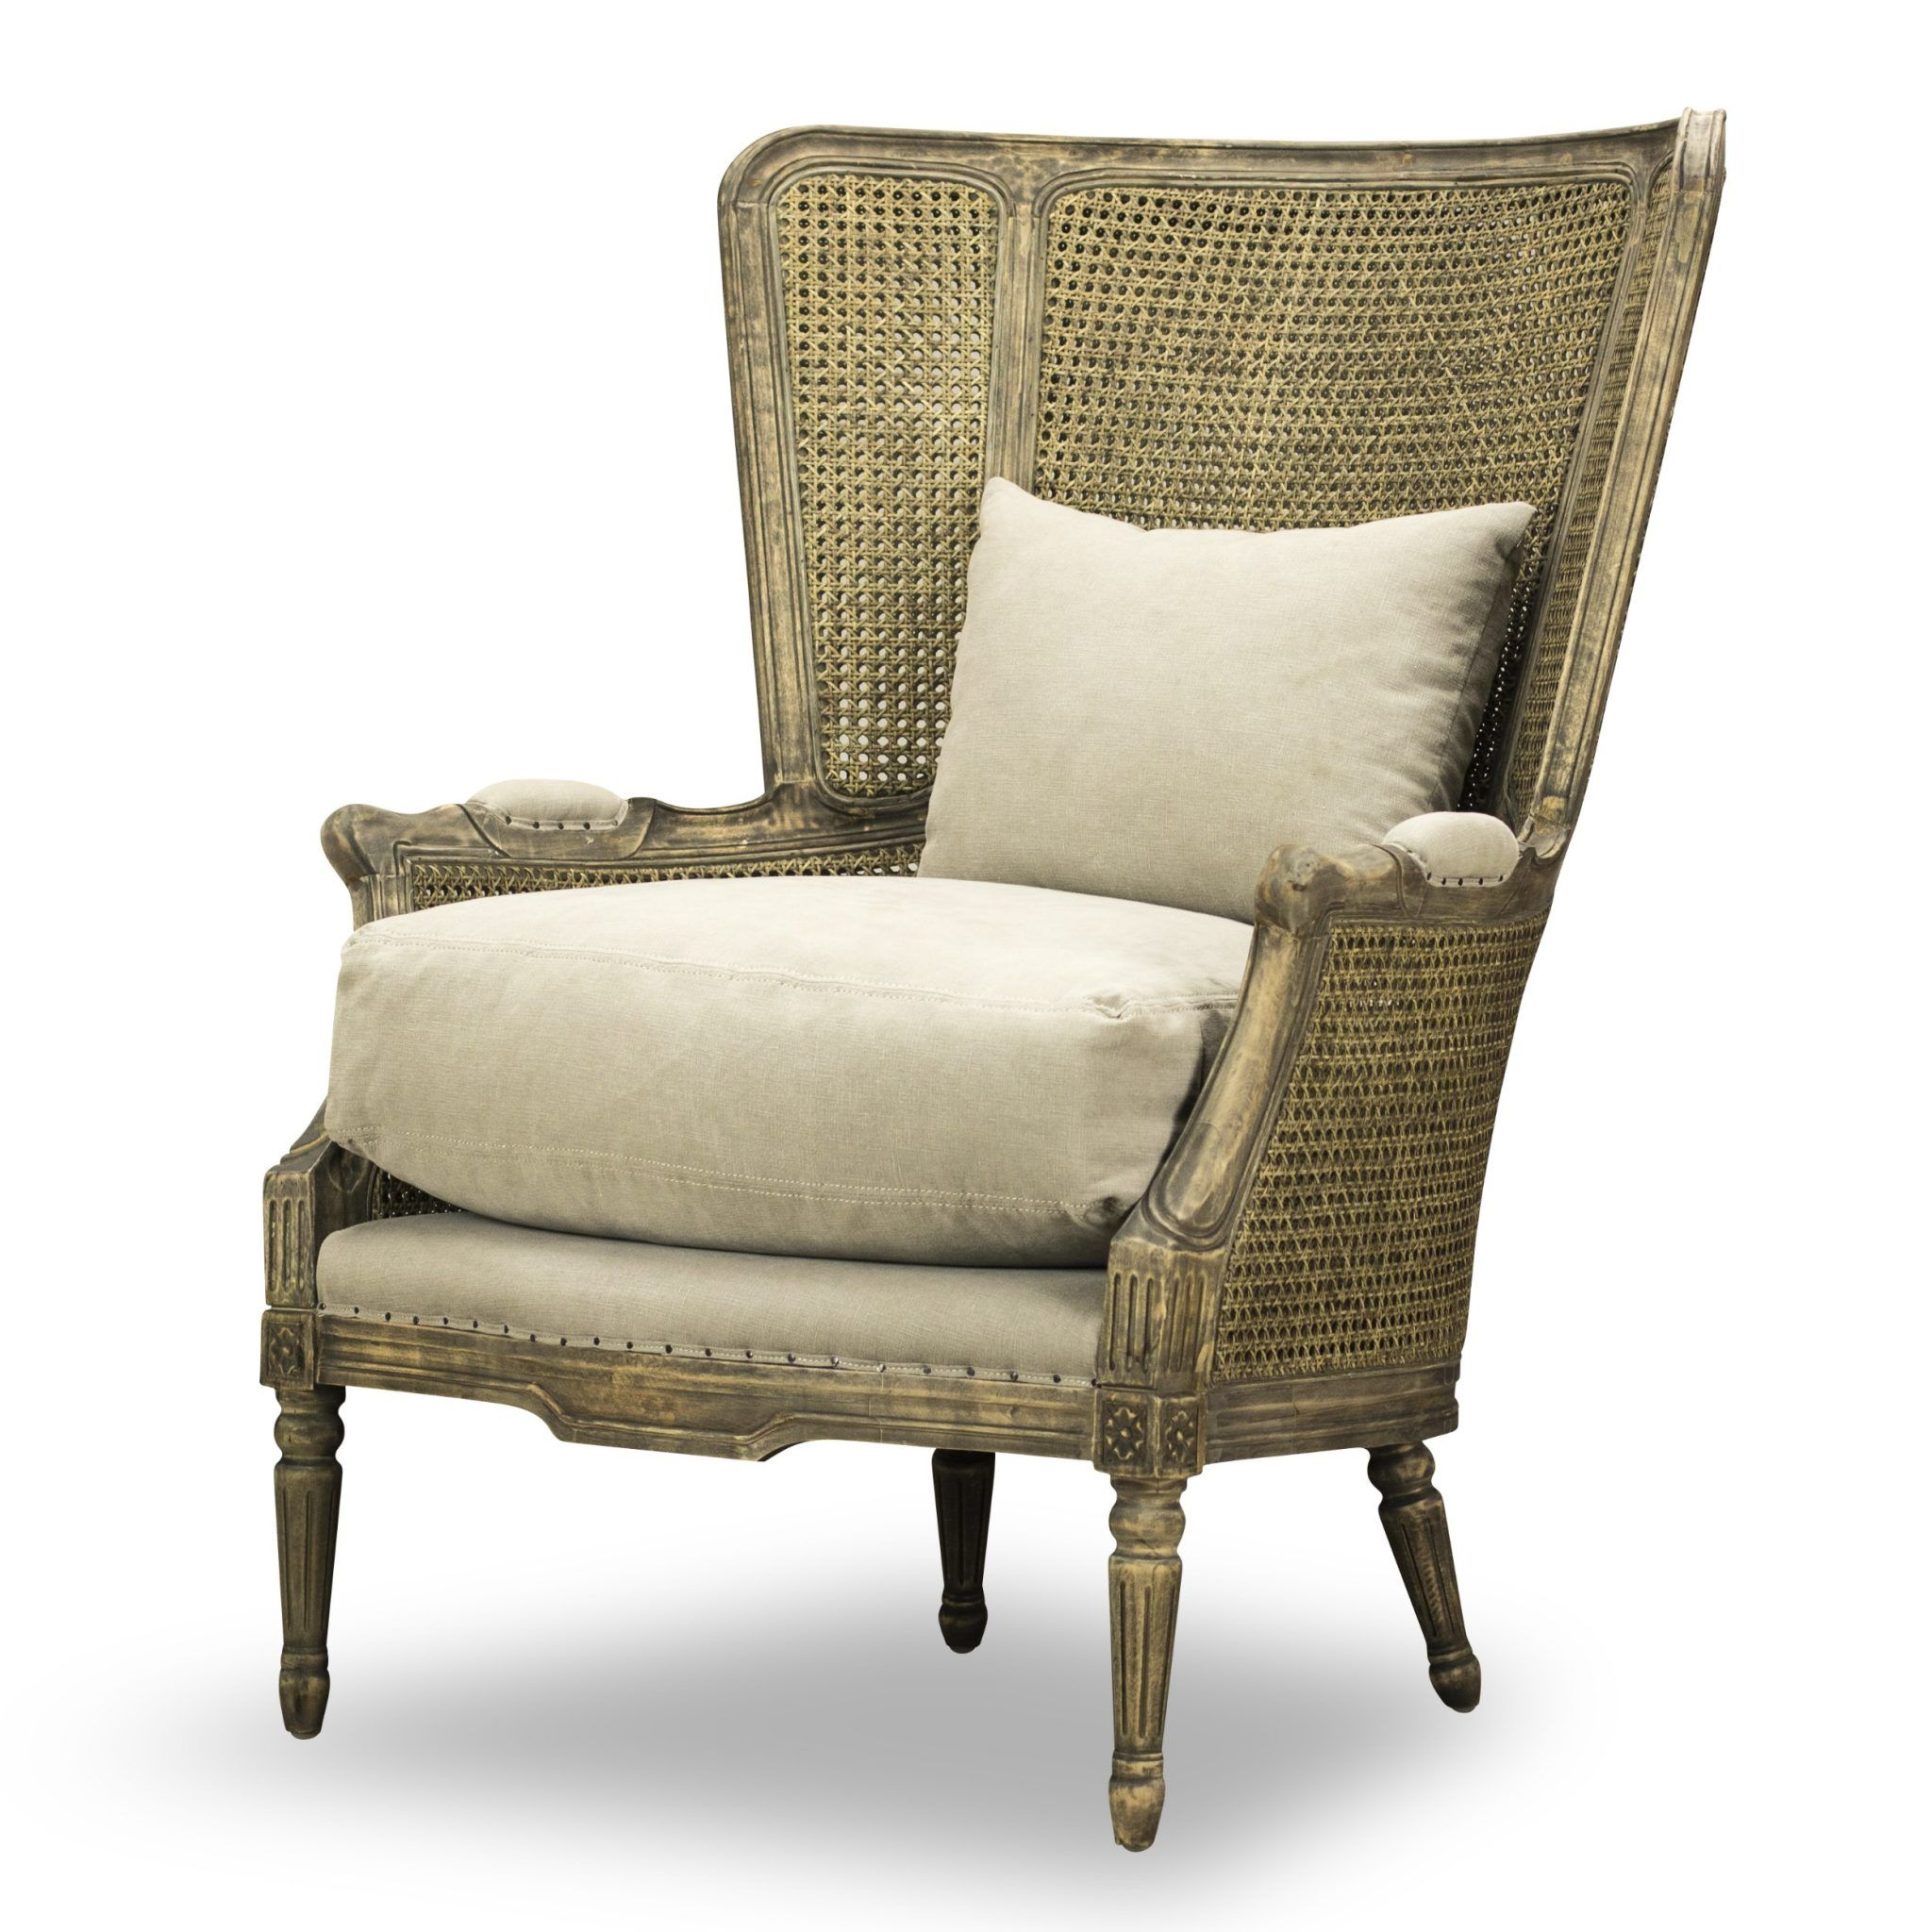 Amelia Chair Windfield Natural Armchair Chair Upholstered Seating